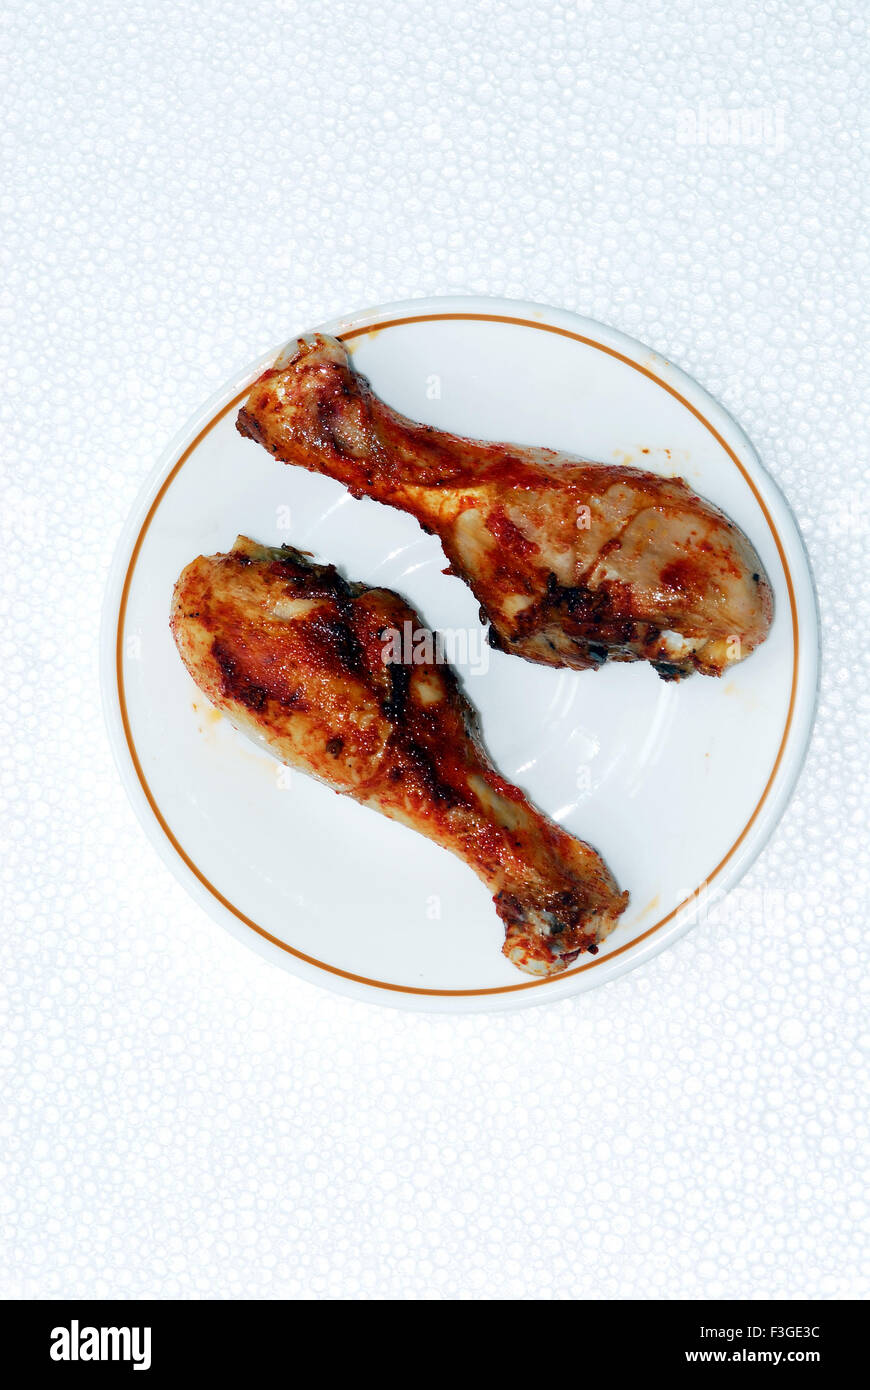 Indian Non Vegetarian Food Grilled Chicken Legs Or Drumstick